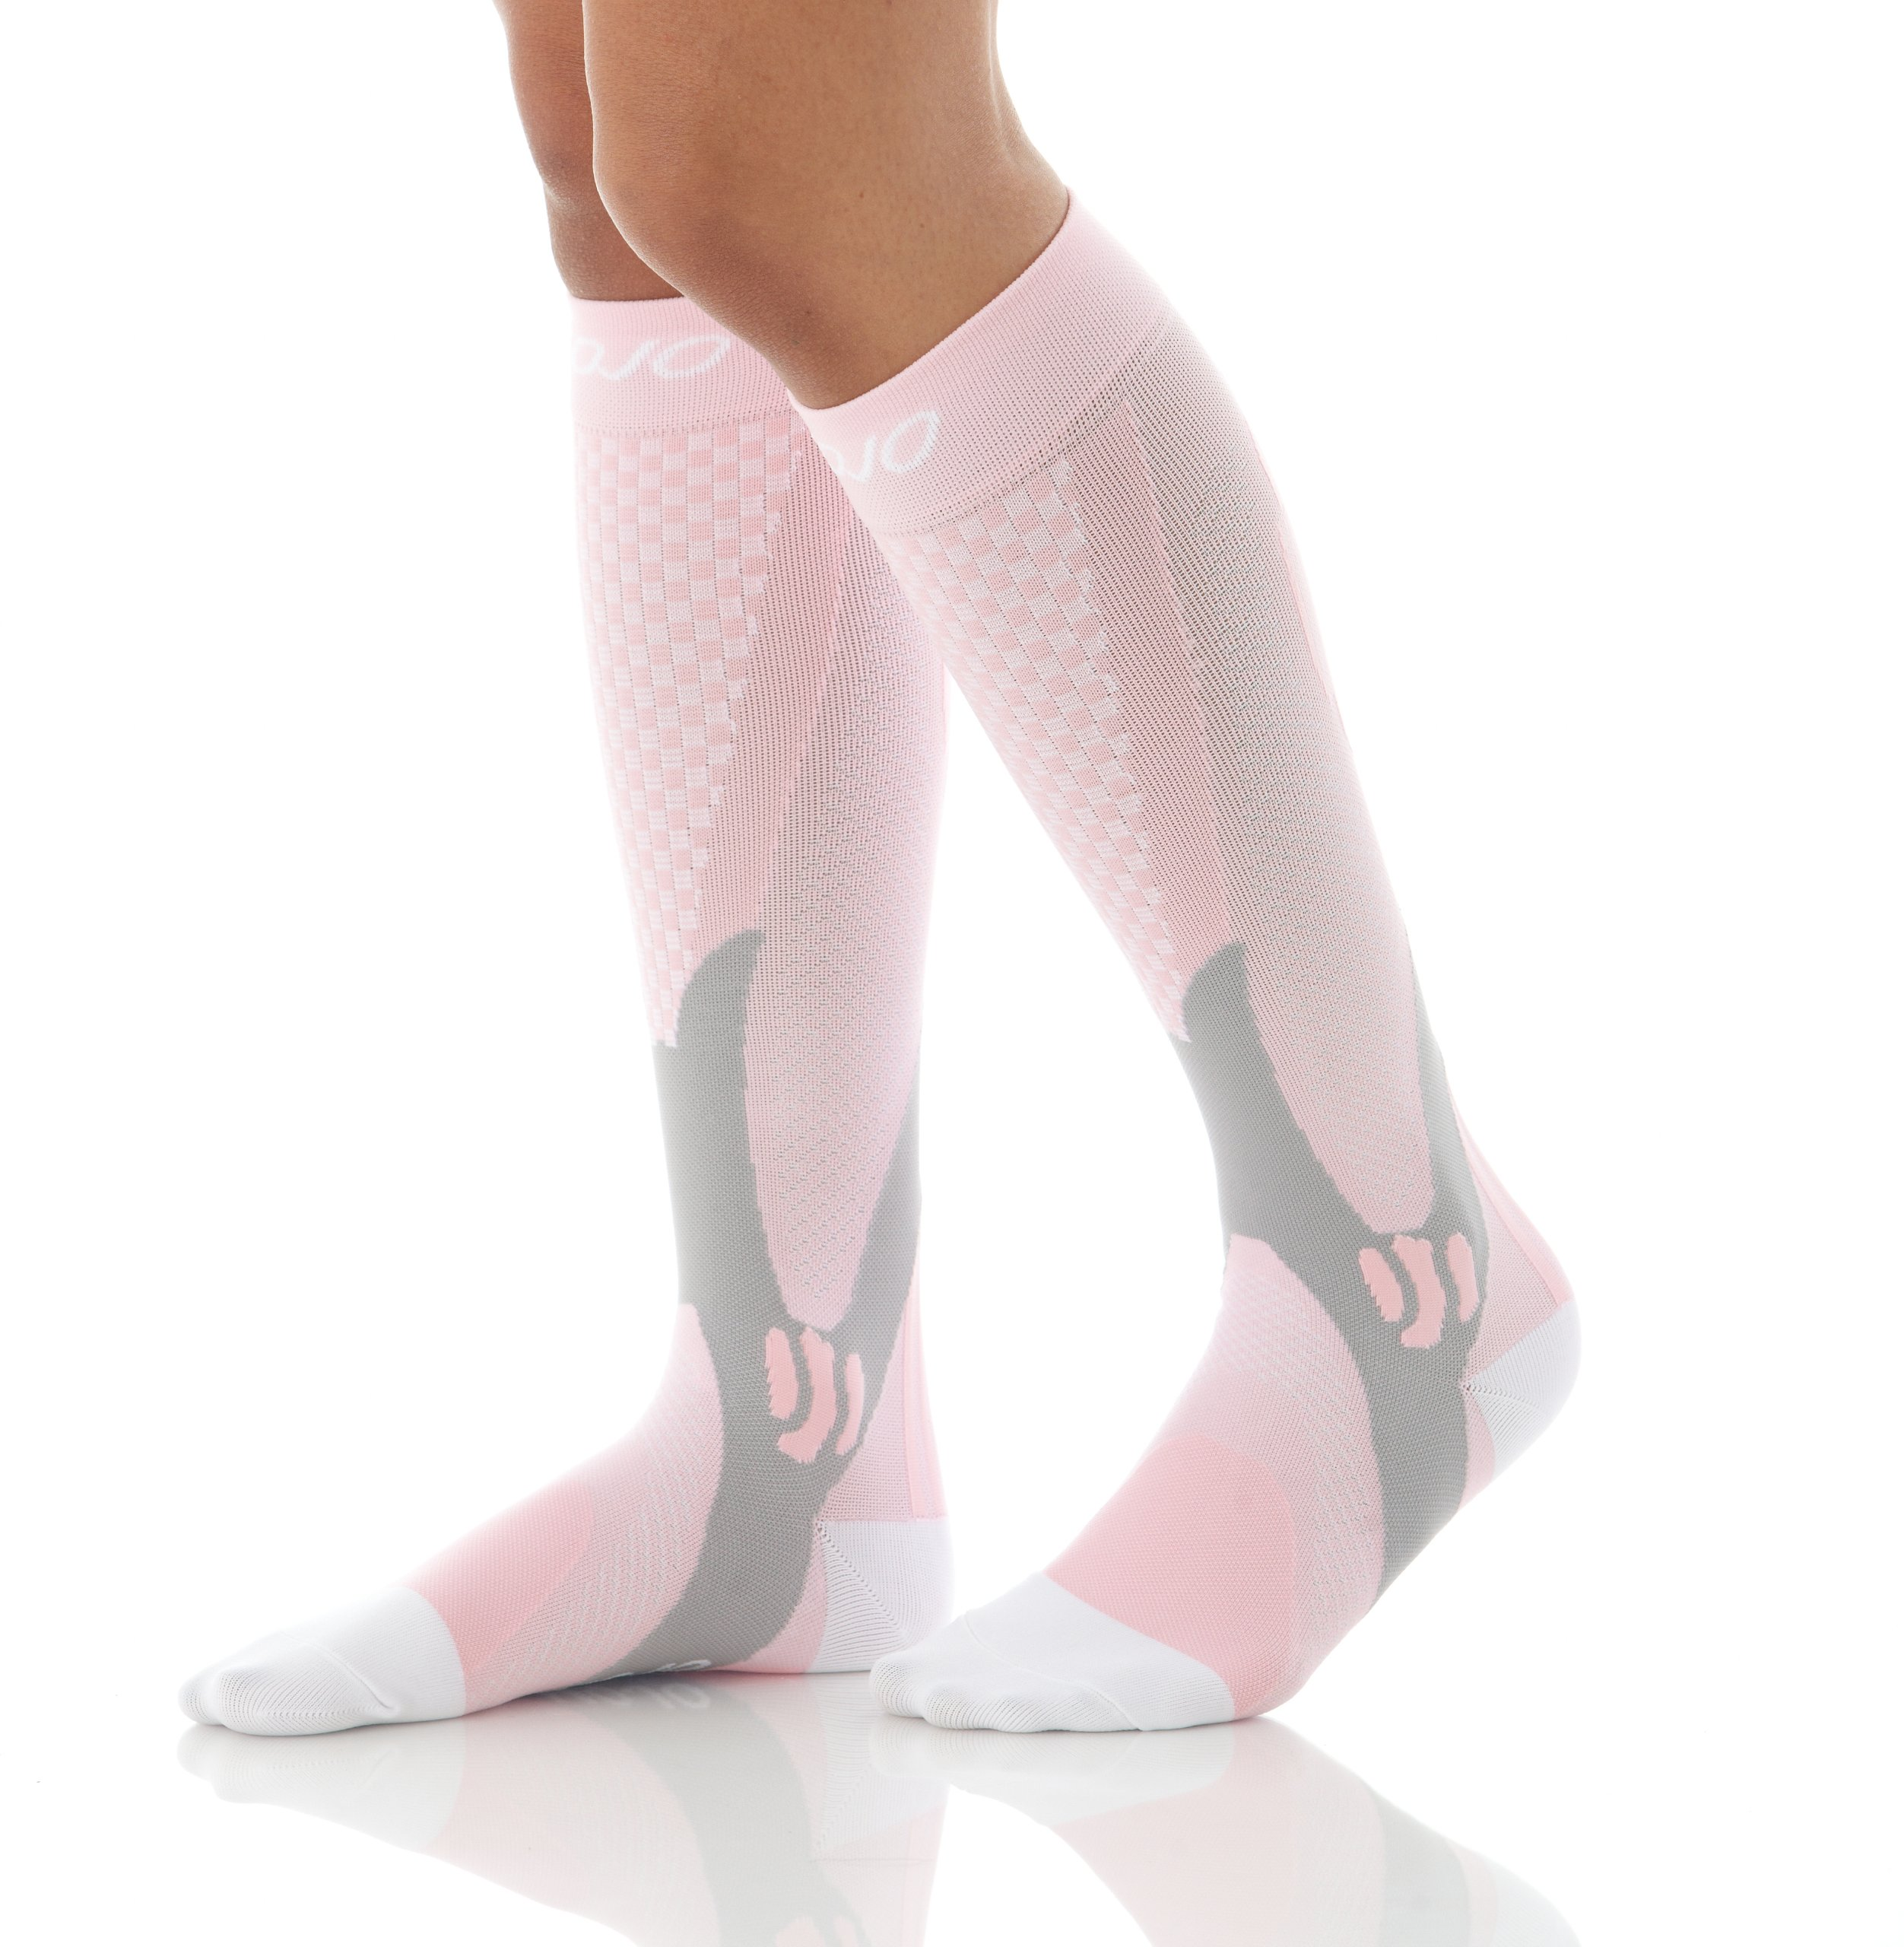 264dc7c711 Authentic, Mojo Sports Compression Socks for Recovery & Performance, Compression  Stockings for Women (